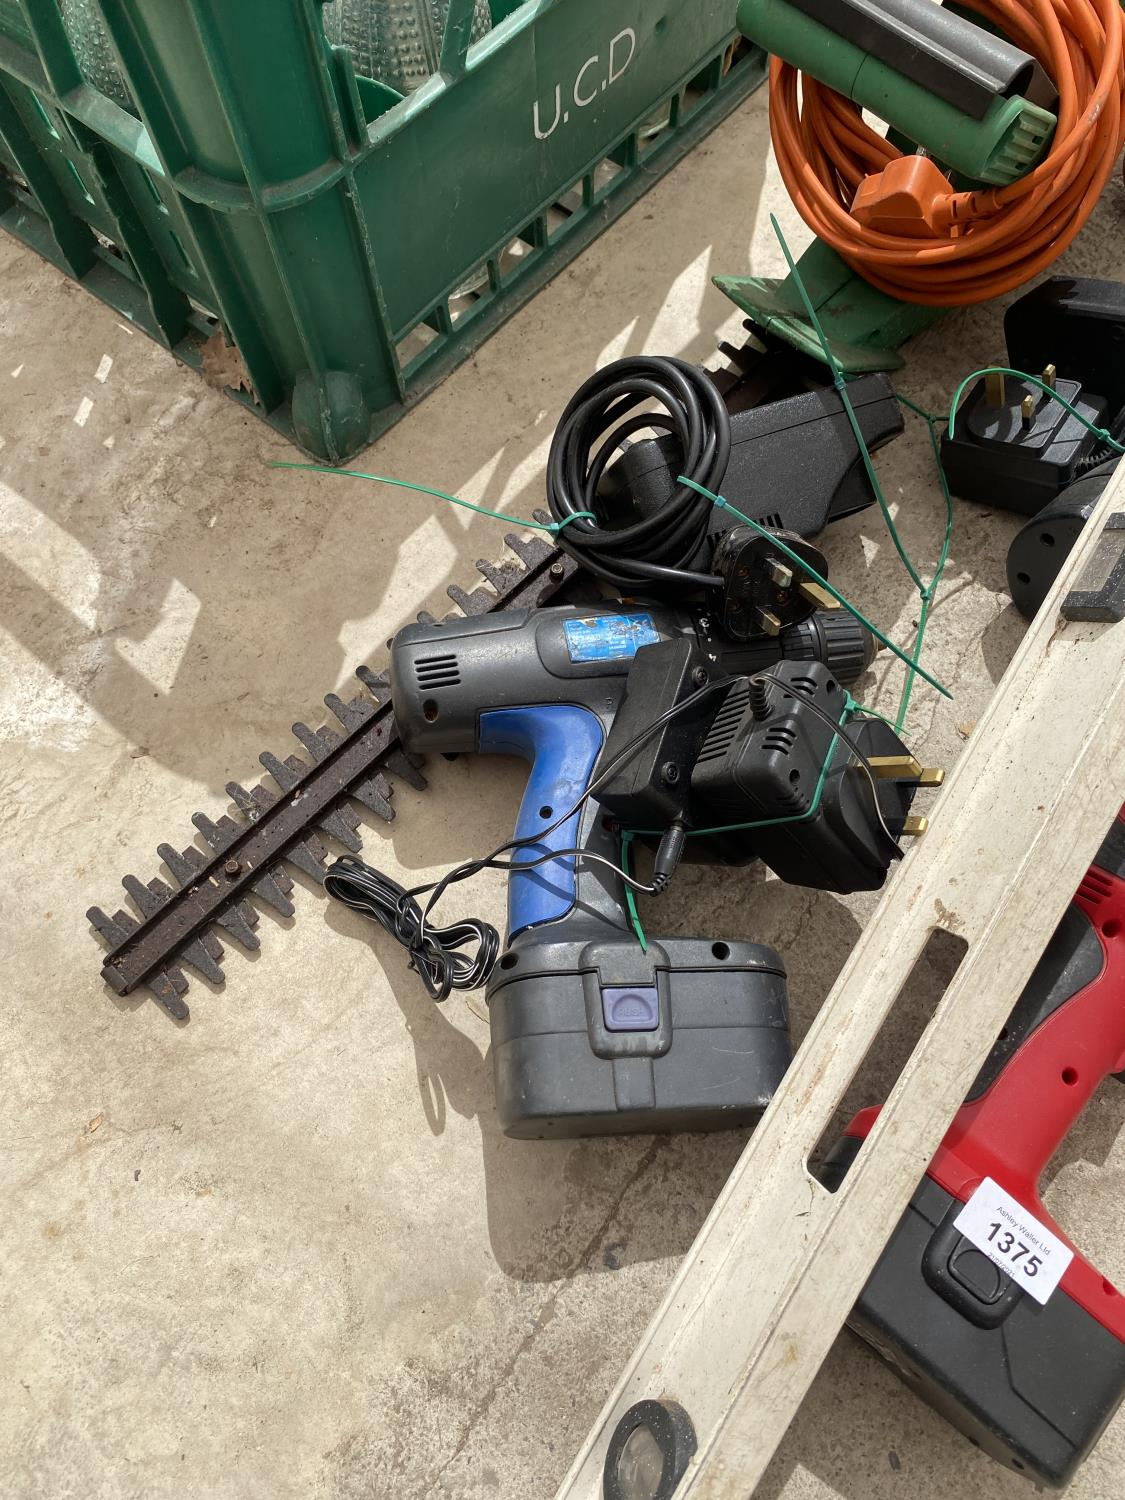 AN ASSORTMENT OF TOOLS TO INCLUDE BATTERY DRILLS, AN ELECTRIC HEDGE TRIMMER AND A FUEL CAN ETC - Image 3 of 4